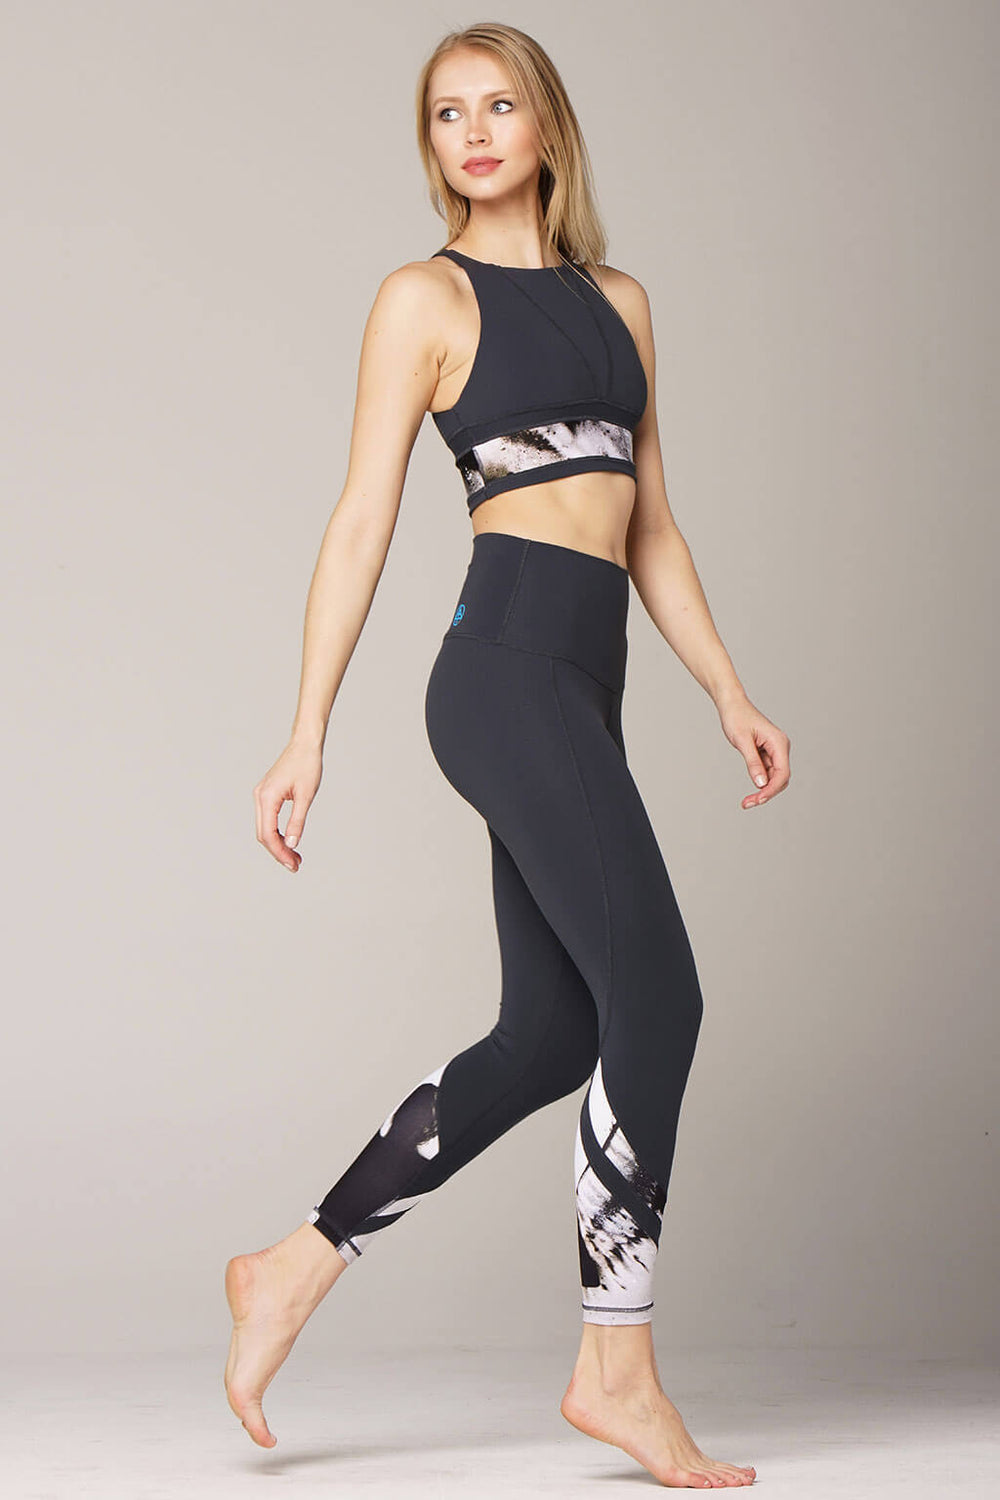 yoga legging by Yogavated Athletic Apparel Oracle Axial Legging